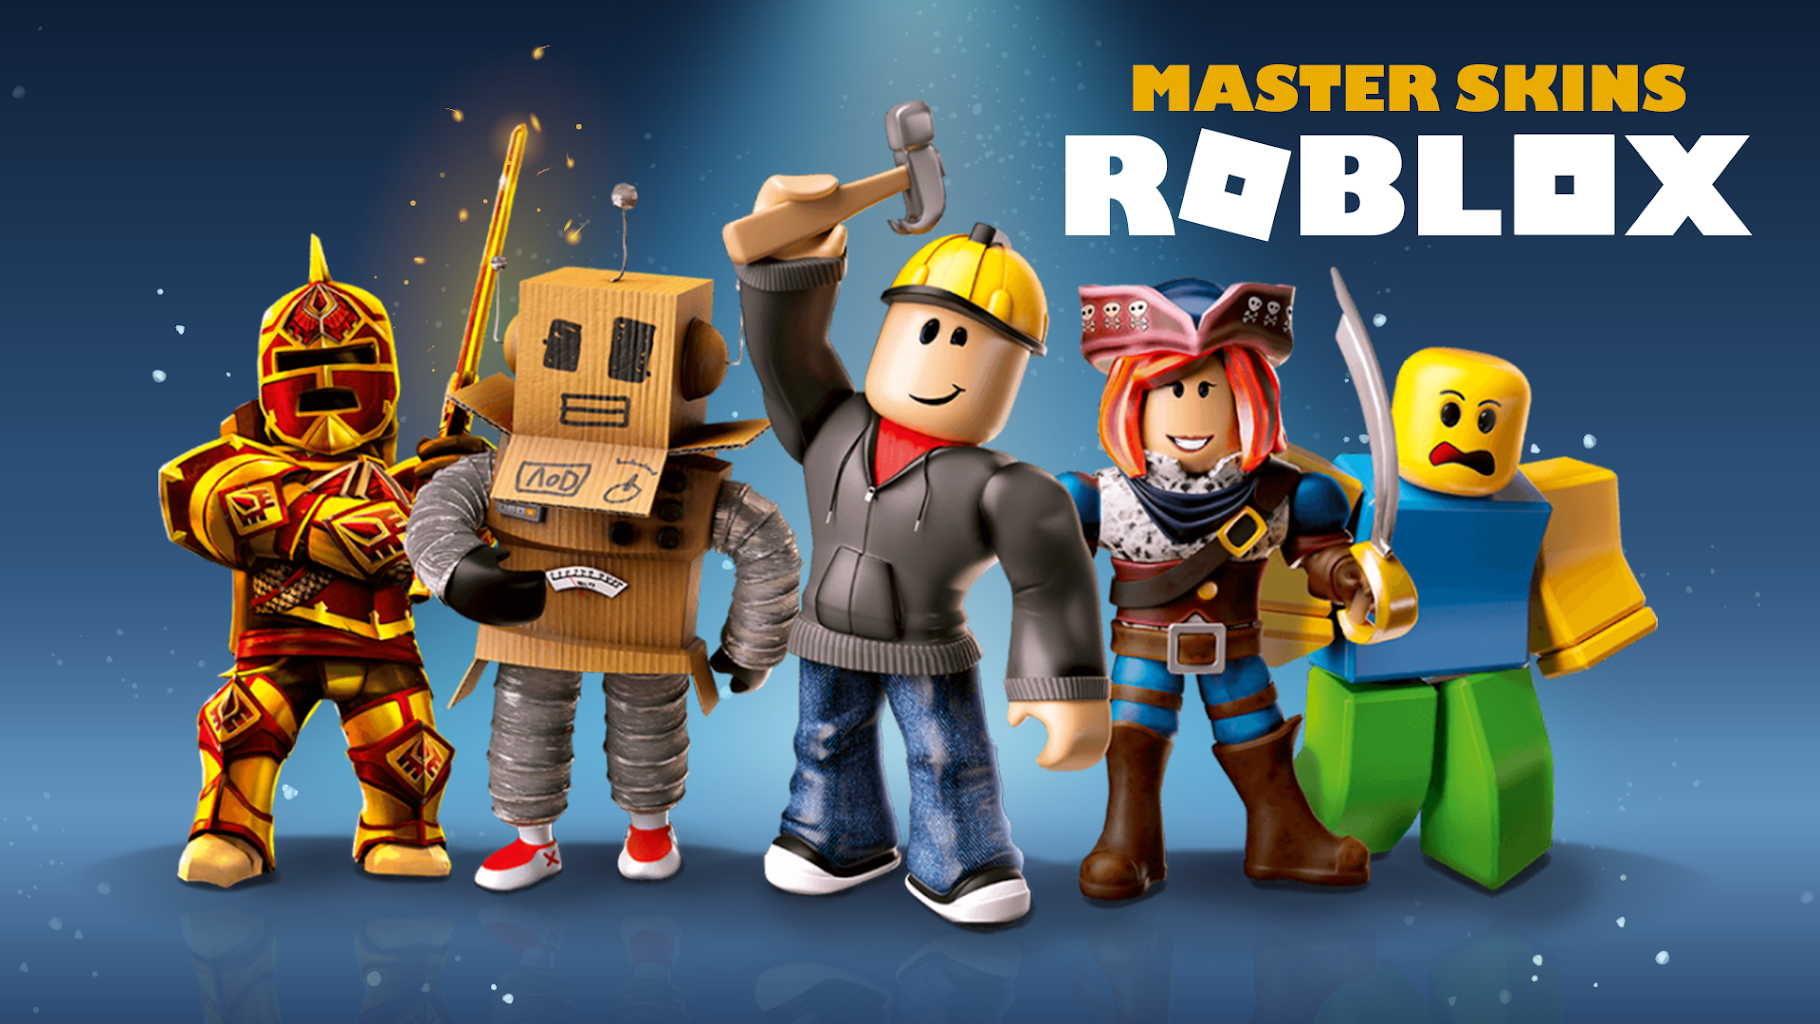 Roblox Apk Download Apkhere Master Skins For Roblox 0 9 Apk Download Com Roblox Skins Masterskins Apk Free